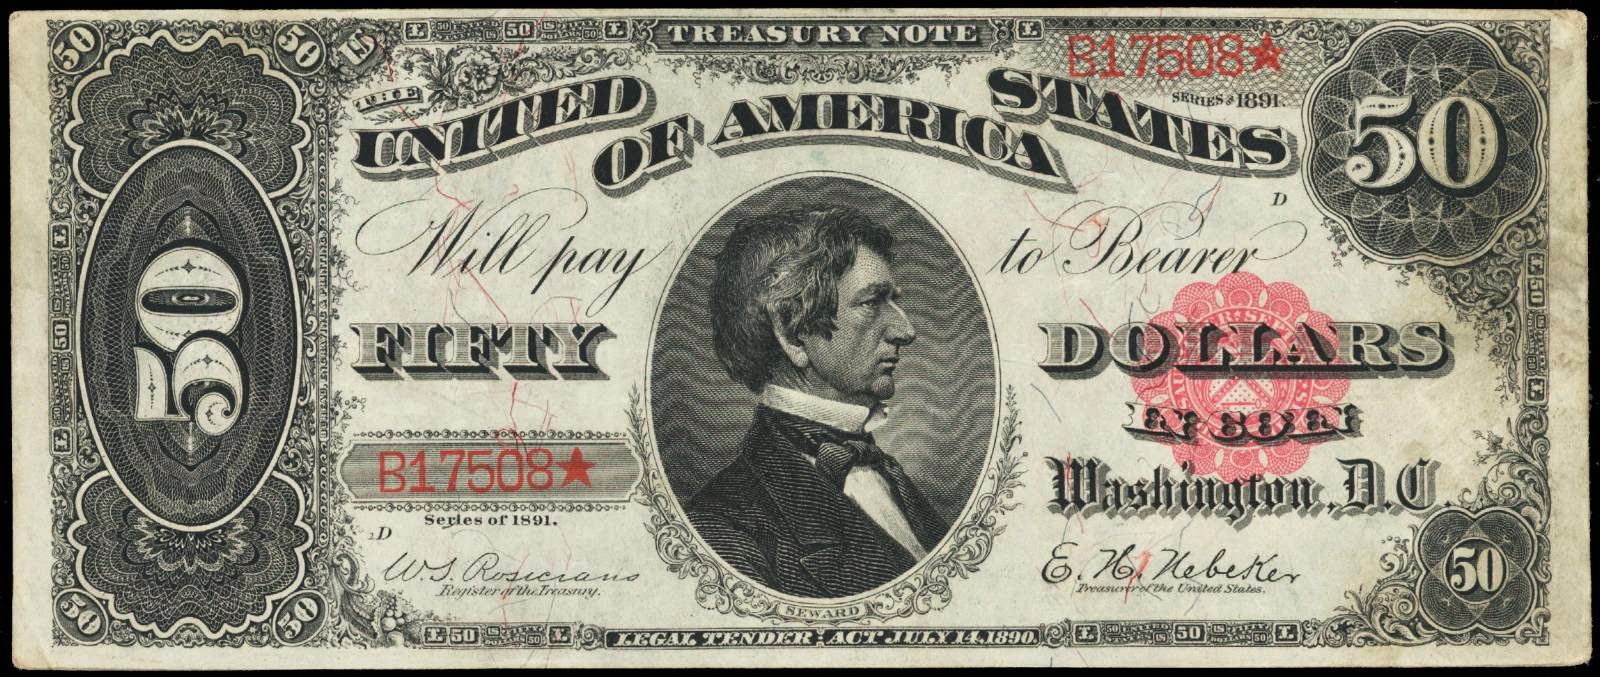 US currency 1891 50 Dollar Treasury or Coin Note William H. Seward